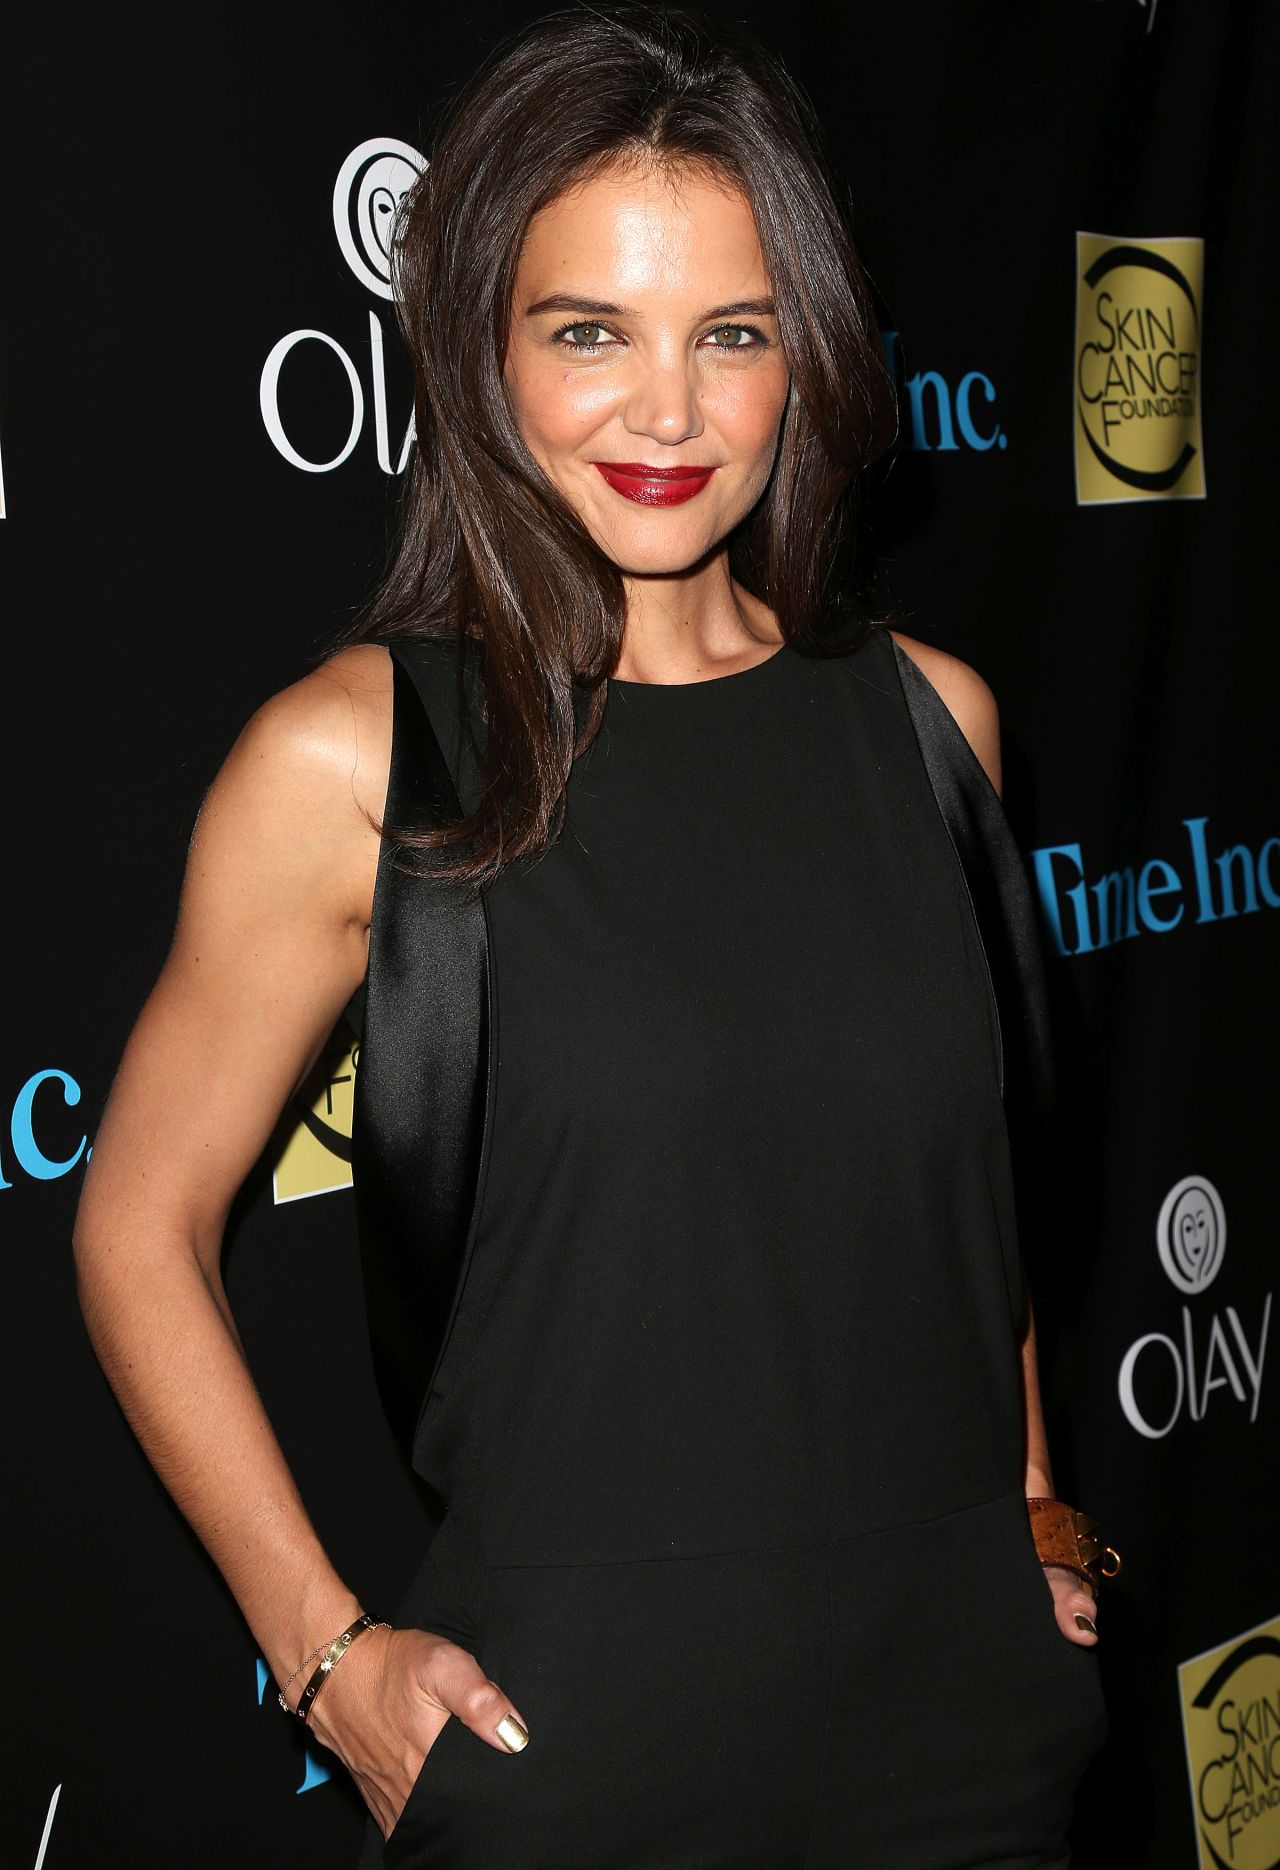 holmes city single women Katie holmes at the glamour magazine salutes the 2004 'women of the year'  century city, ca - may 19: actress katie holmes attends the 'beauty culture .